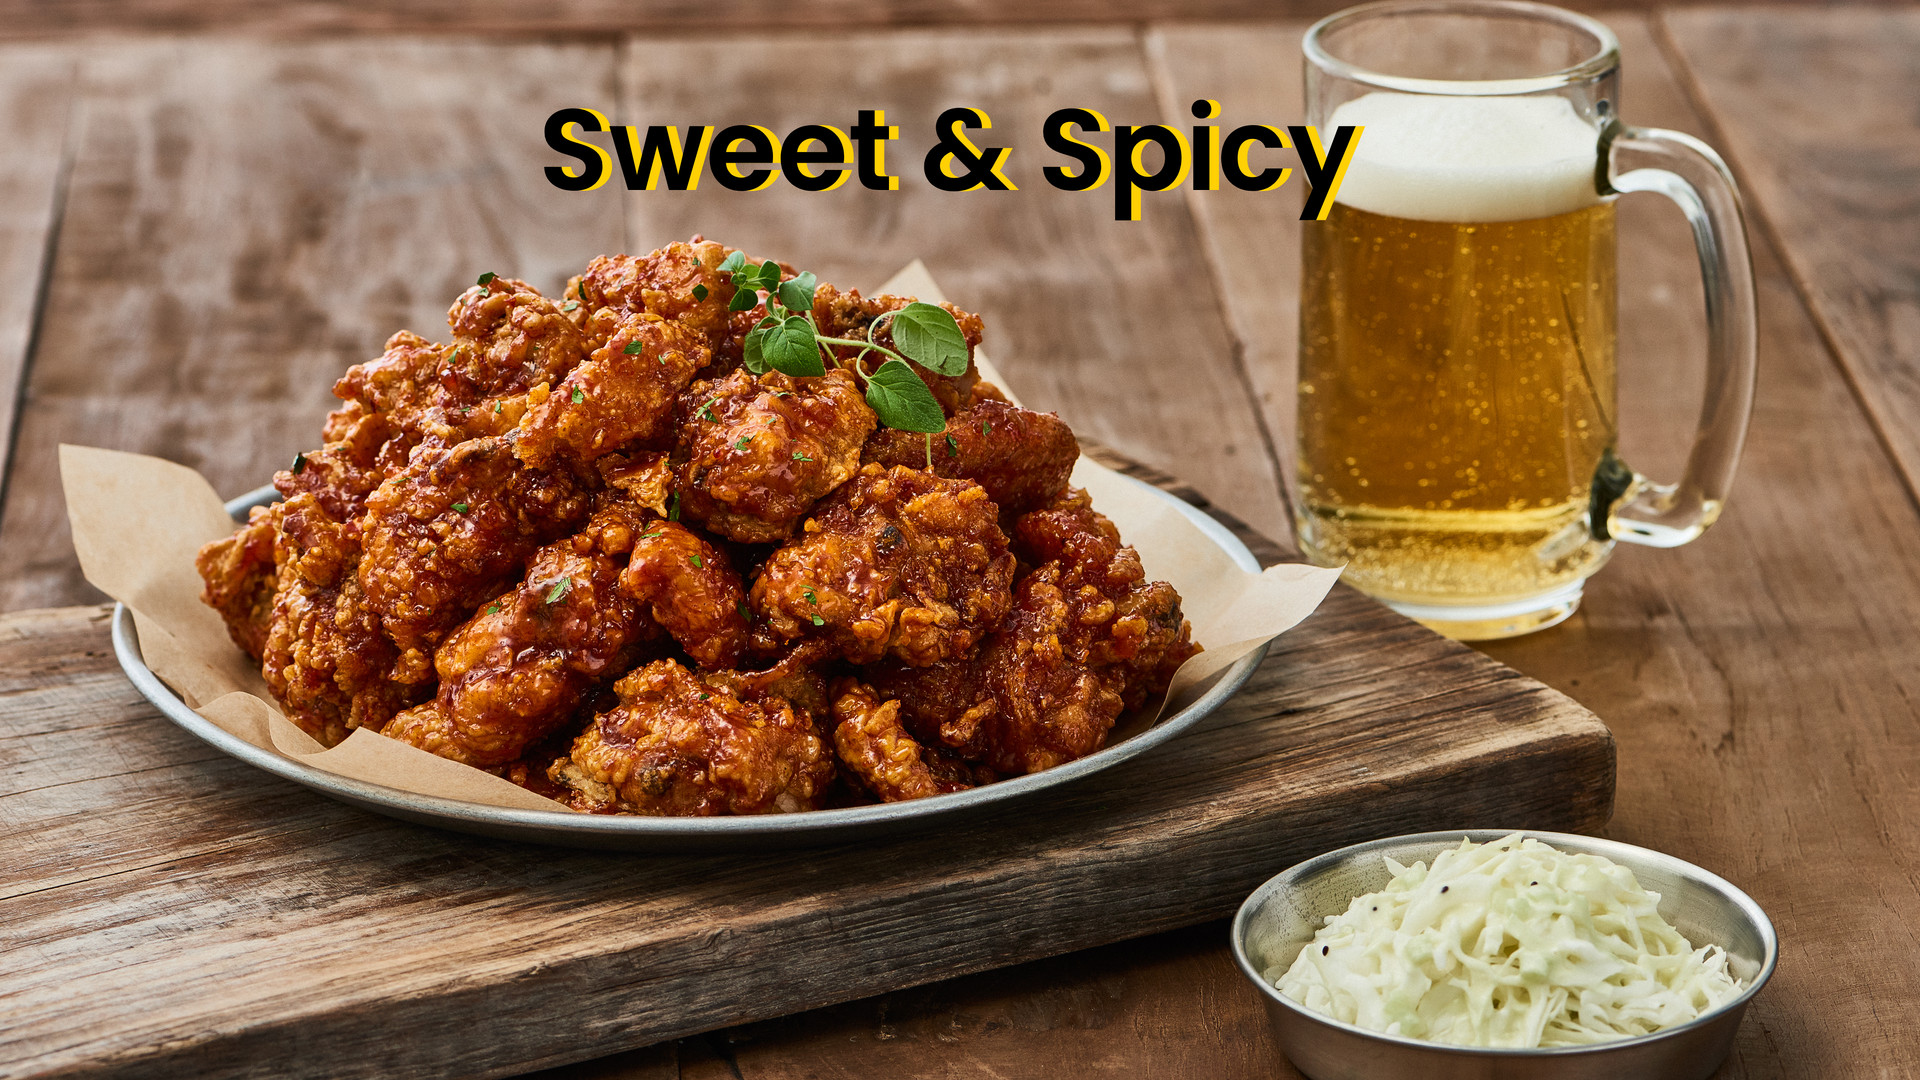 Left Wing Bar Sweet & Spicy